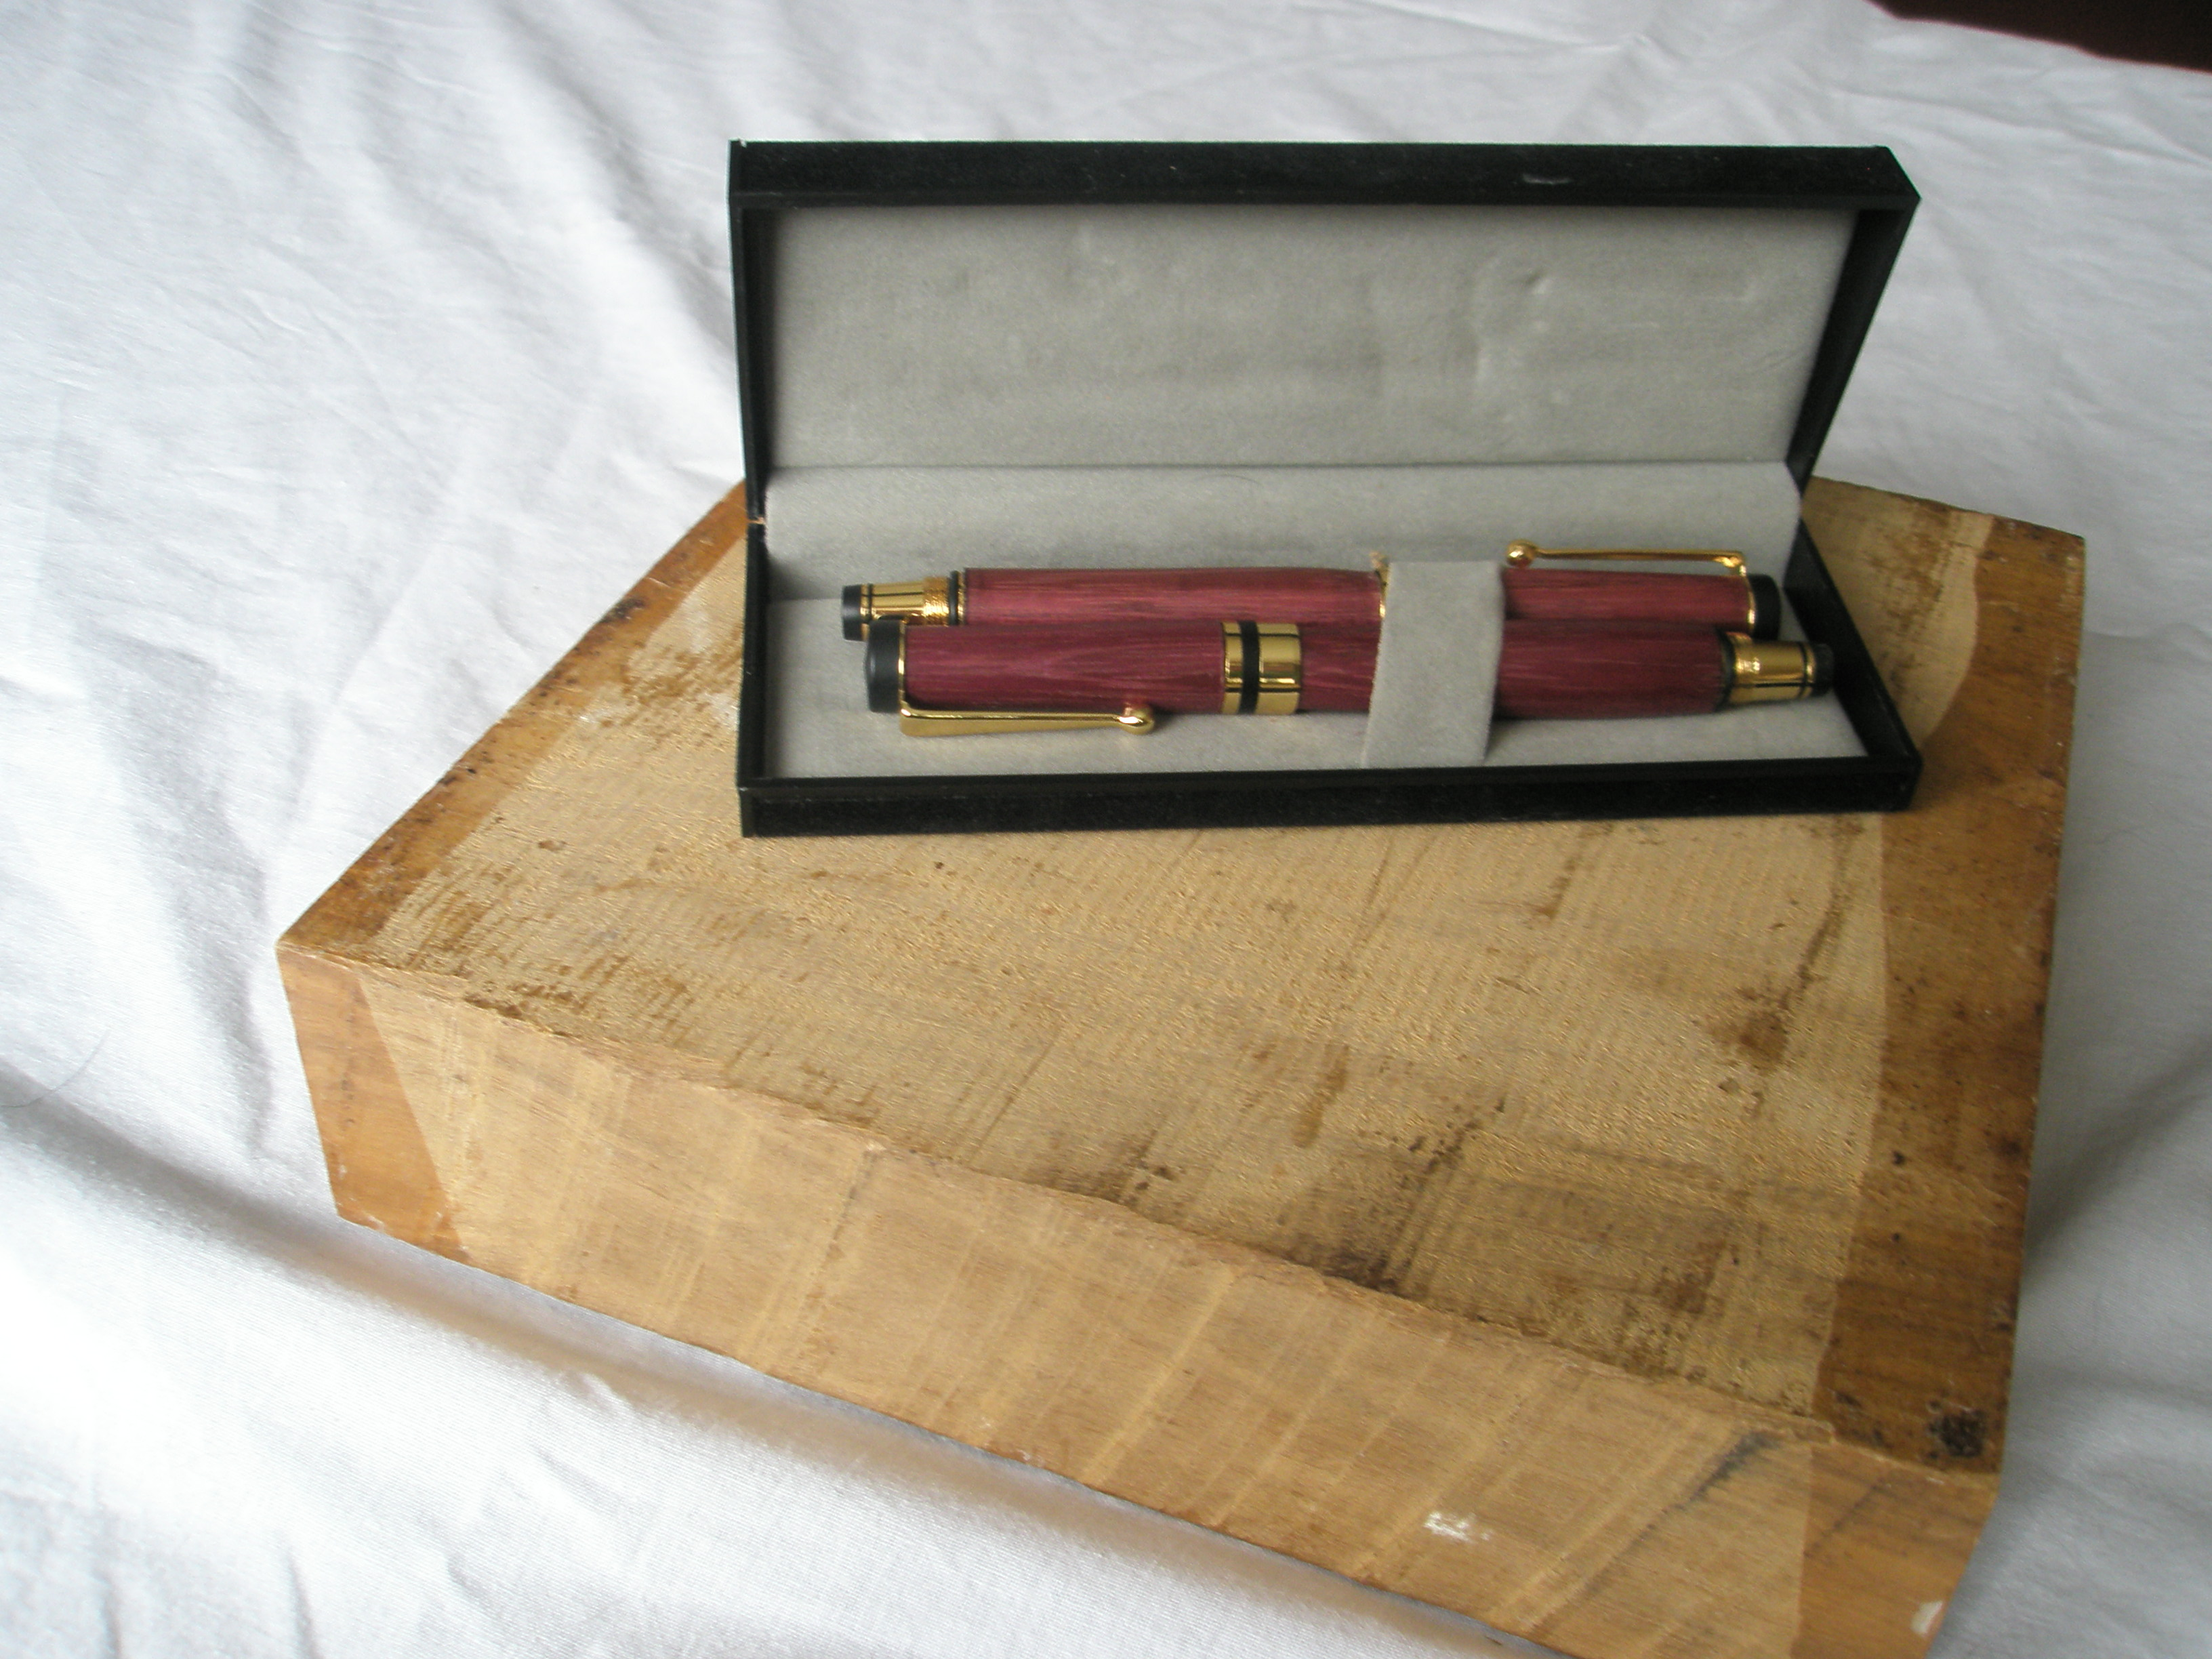 Pair of Roller ball and Fountain pens in Purple Heart wood in 24carat Gold plated trimmings